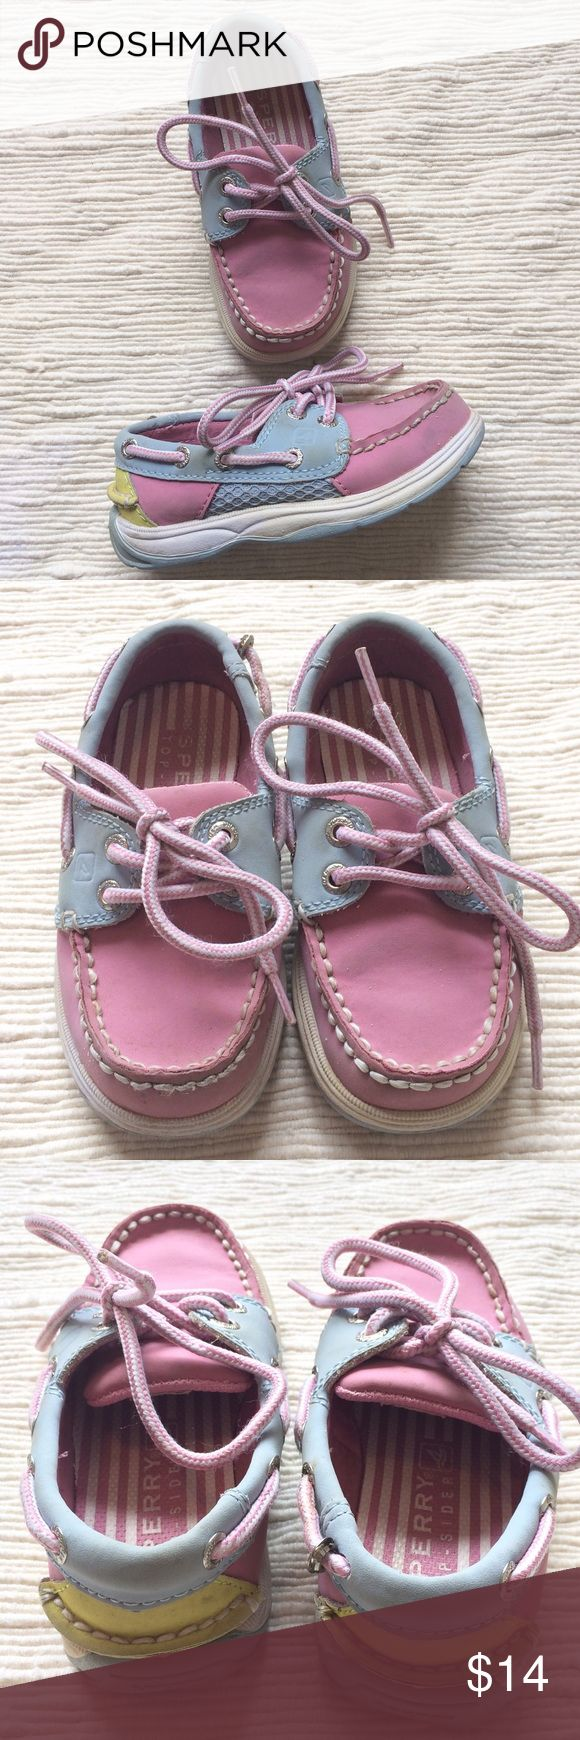 Little girls pastel Sperry boat shoes Pastel Sperry boat shoes with pink and white laces. Play condition due to some wear on the leather and one bracket has come out but can be popped back in. Soles have barely any wear. Check out my other listings for a custom bundle! Sperry Shoes